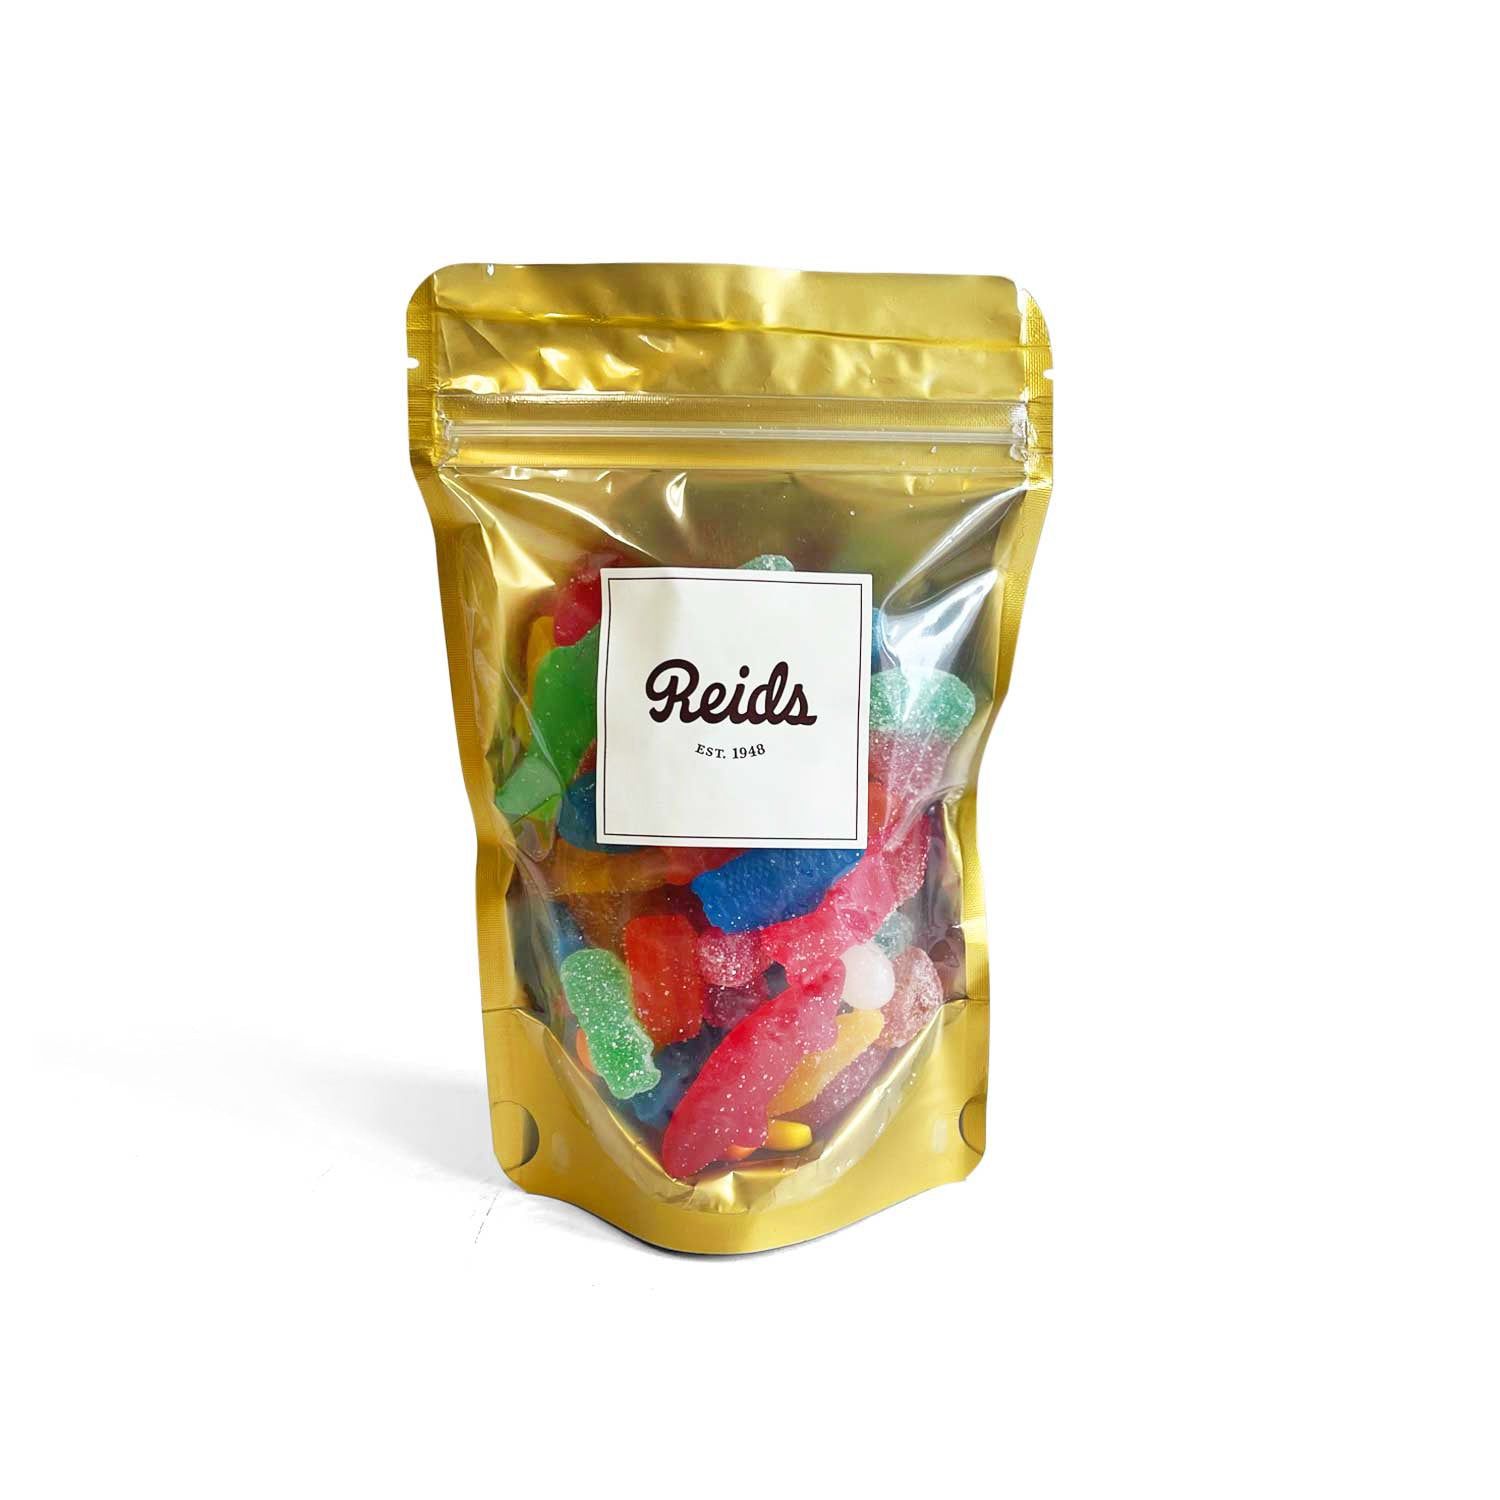 1/2 lb mix of sweet and sour candies.